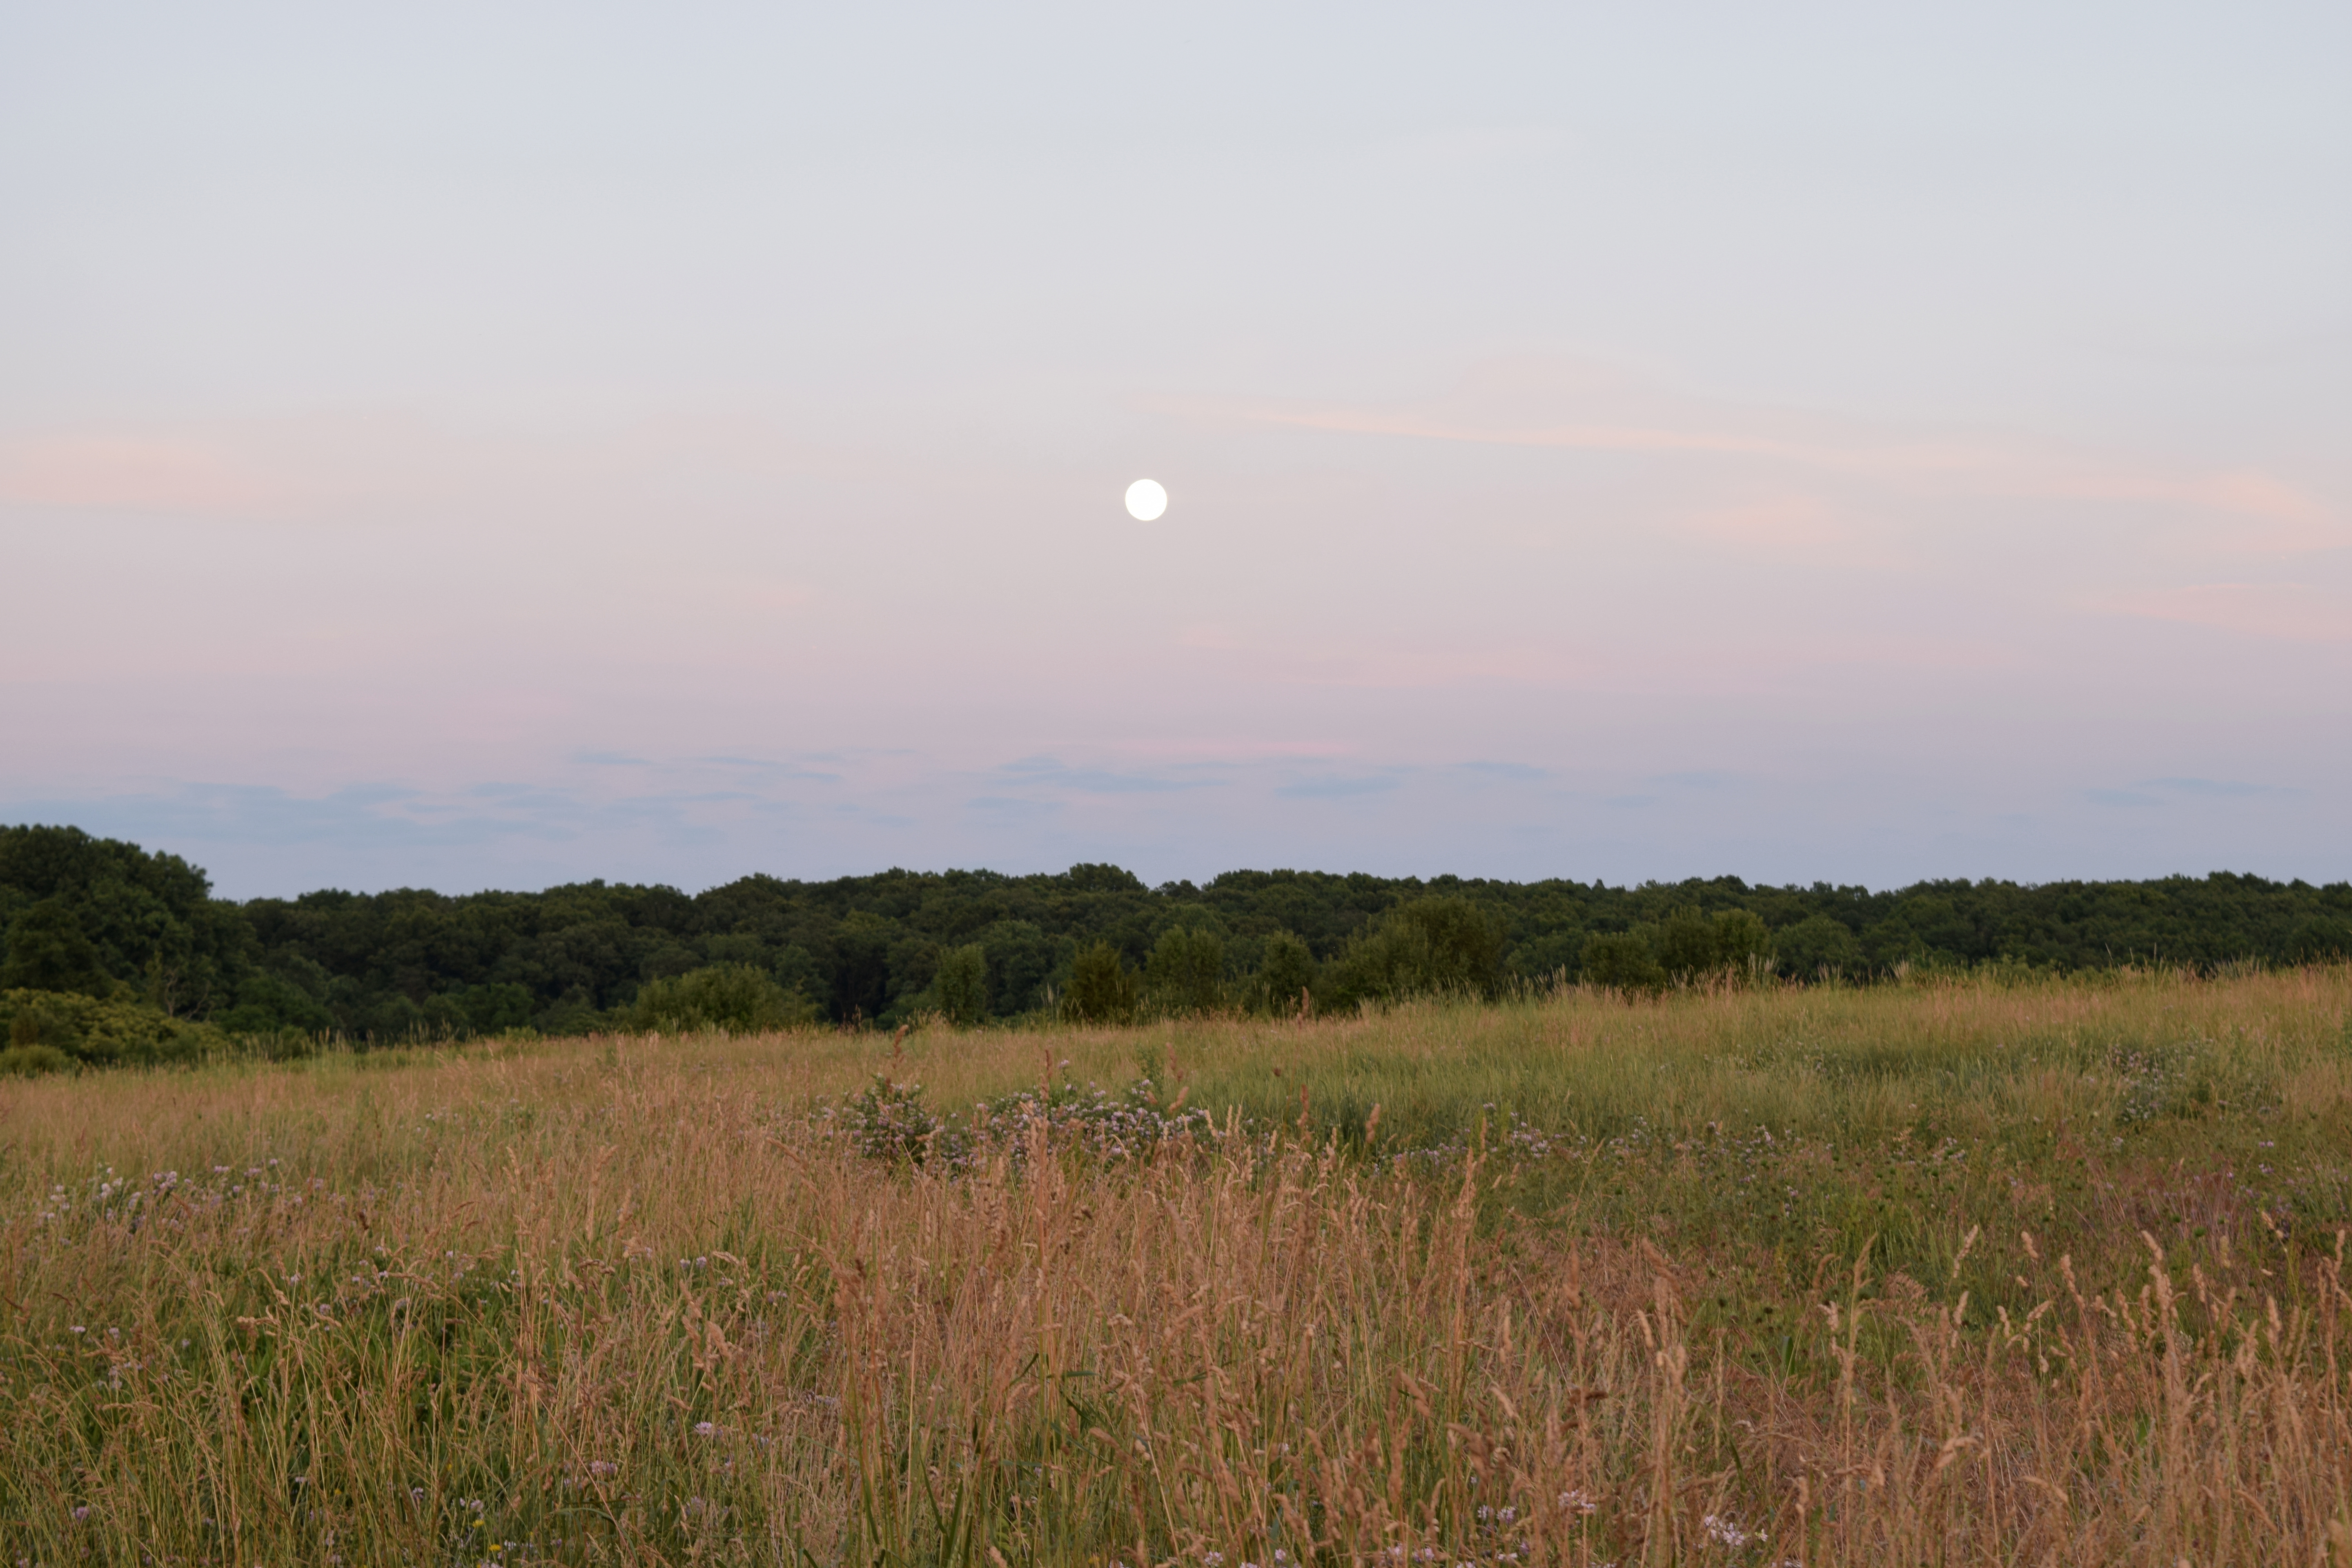 Field and moon photograph